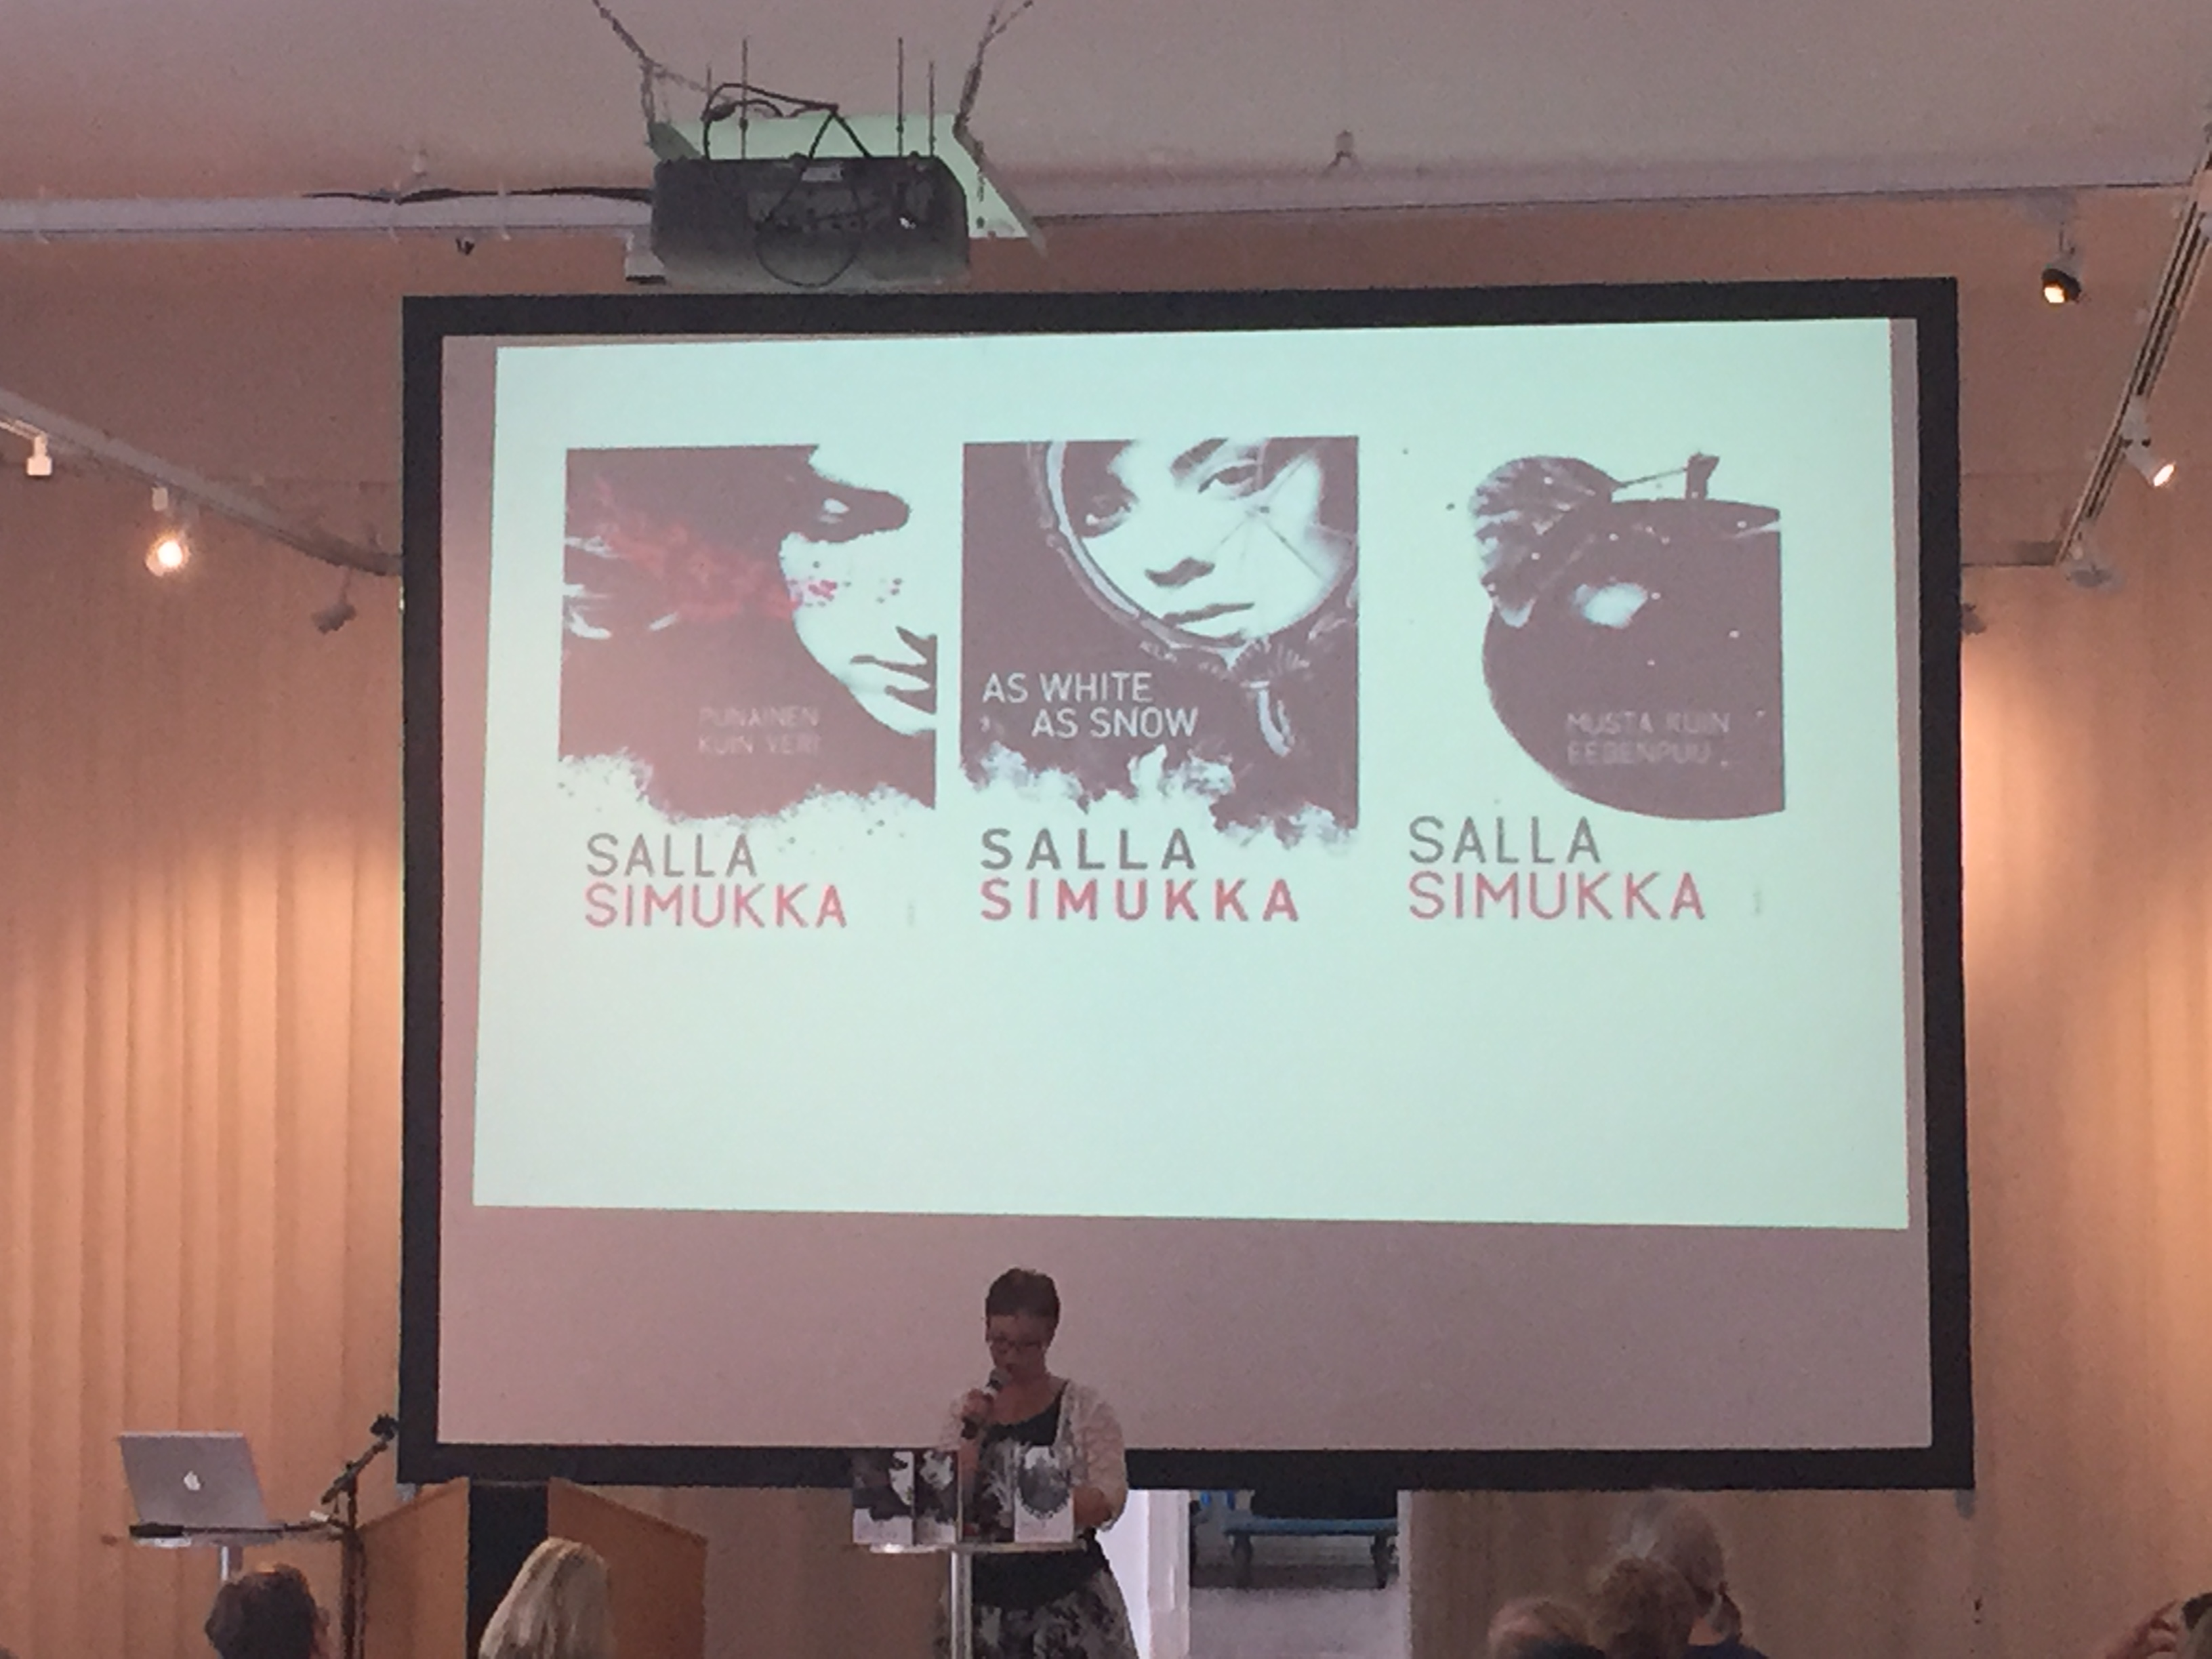 Salla Simukka on her trilogy